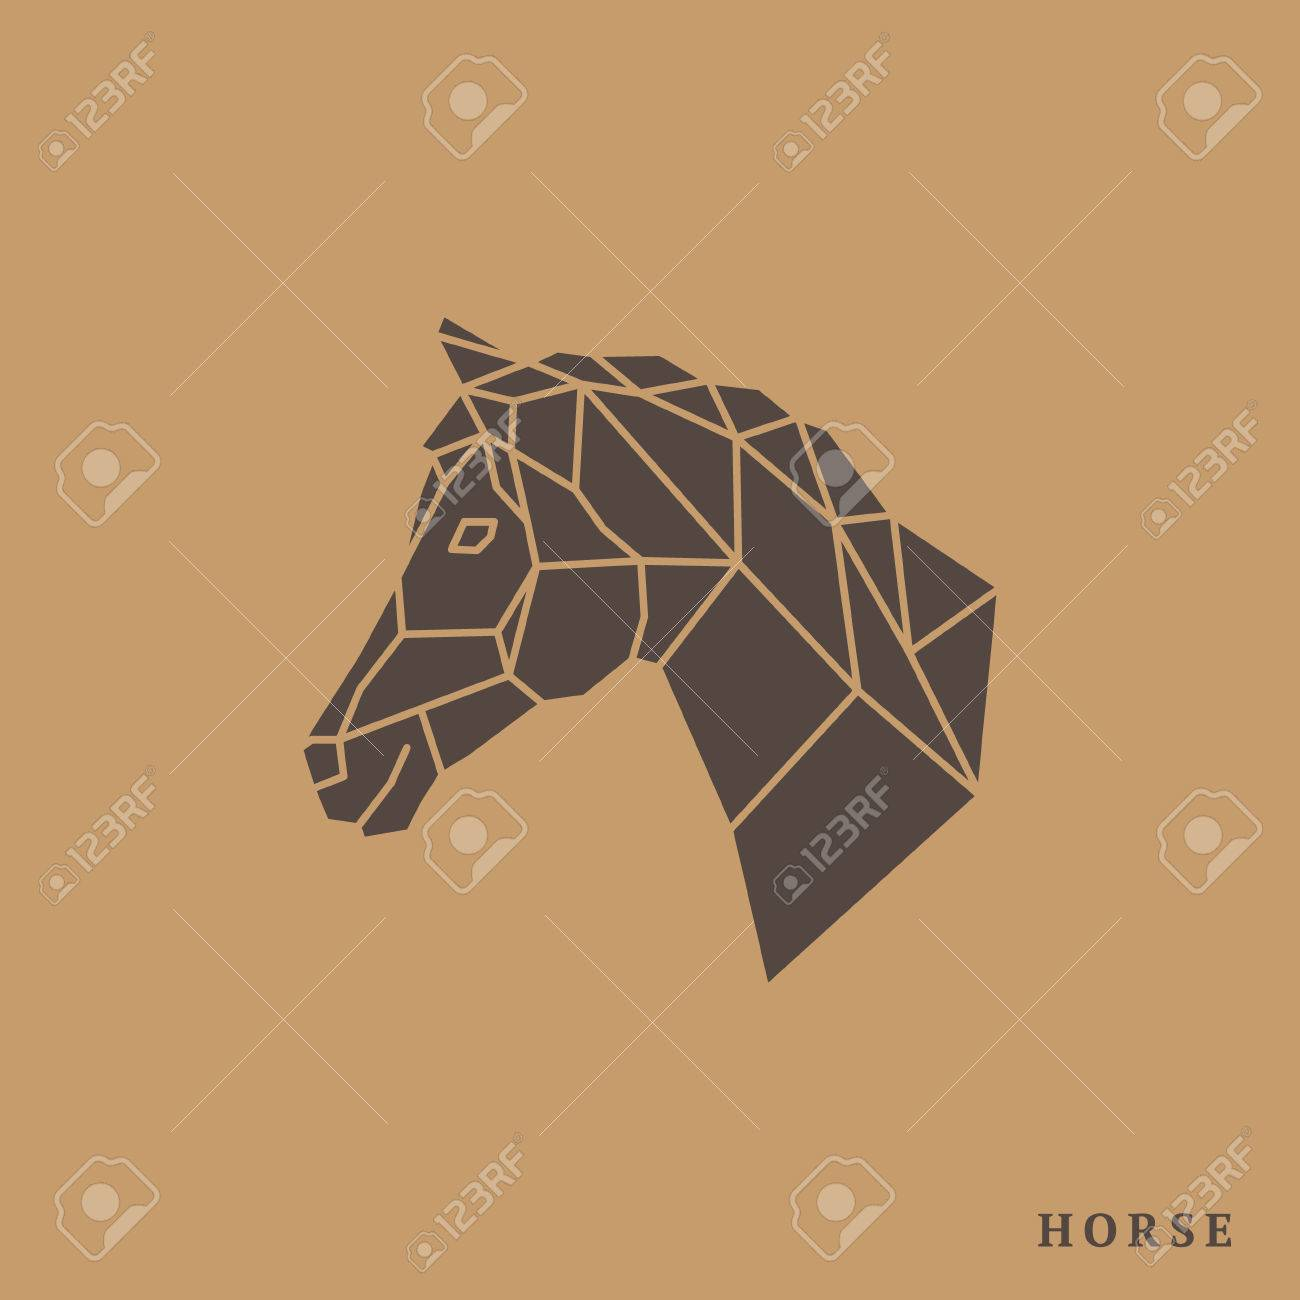 Horse Head Geometric Lines Silhouette Isolated On Light Brown Royalty Free Cliparts Vectors And Stock Illustration Image 66694326